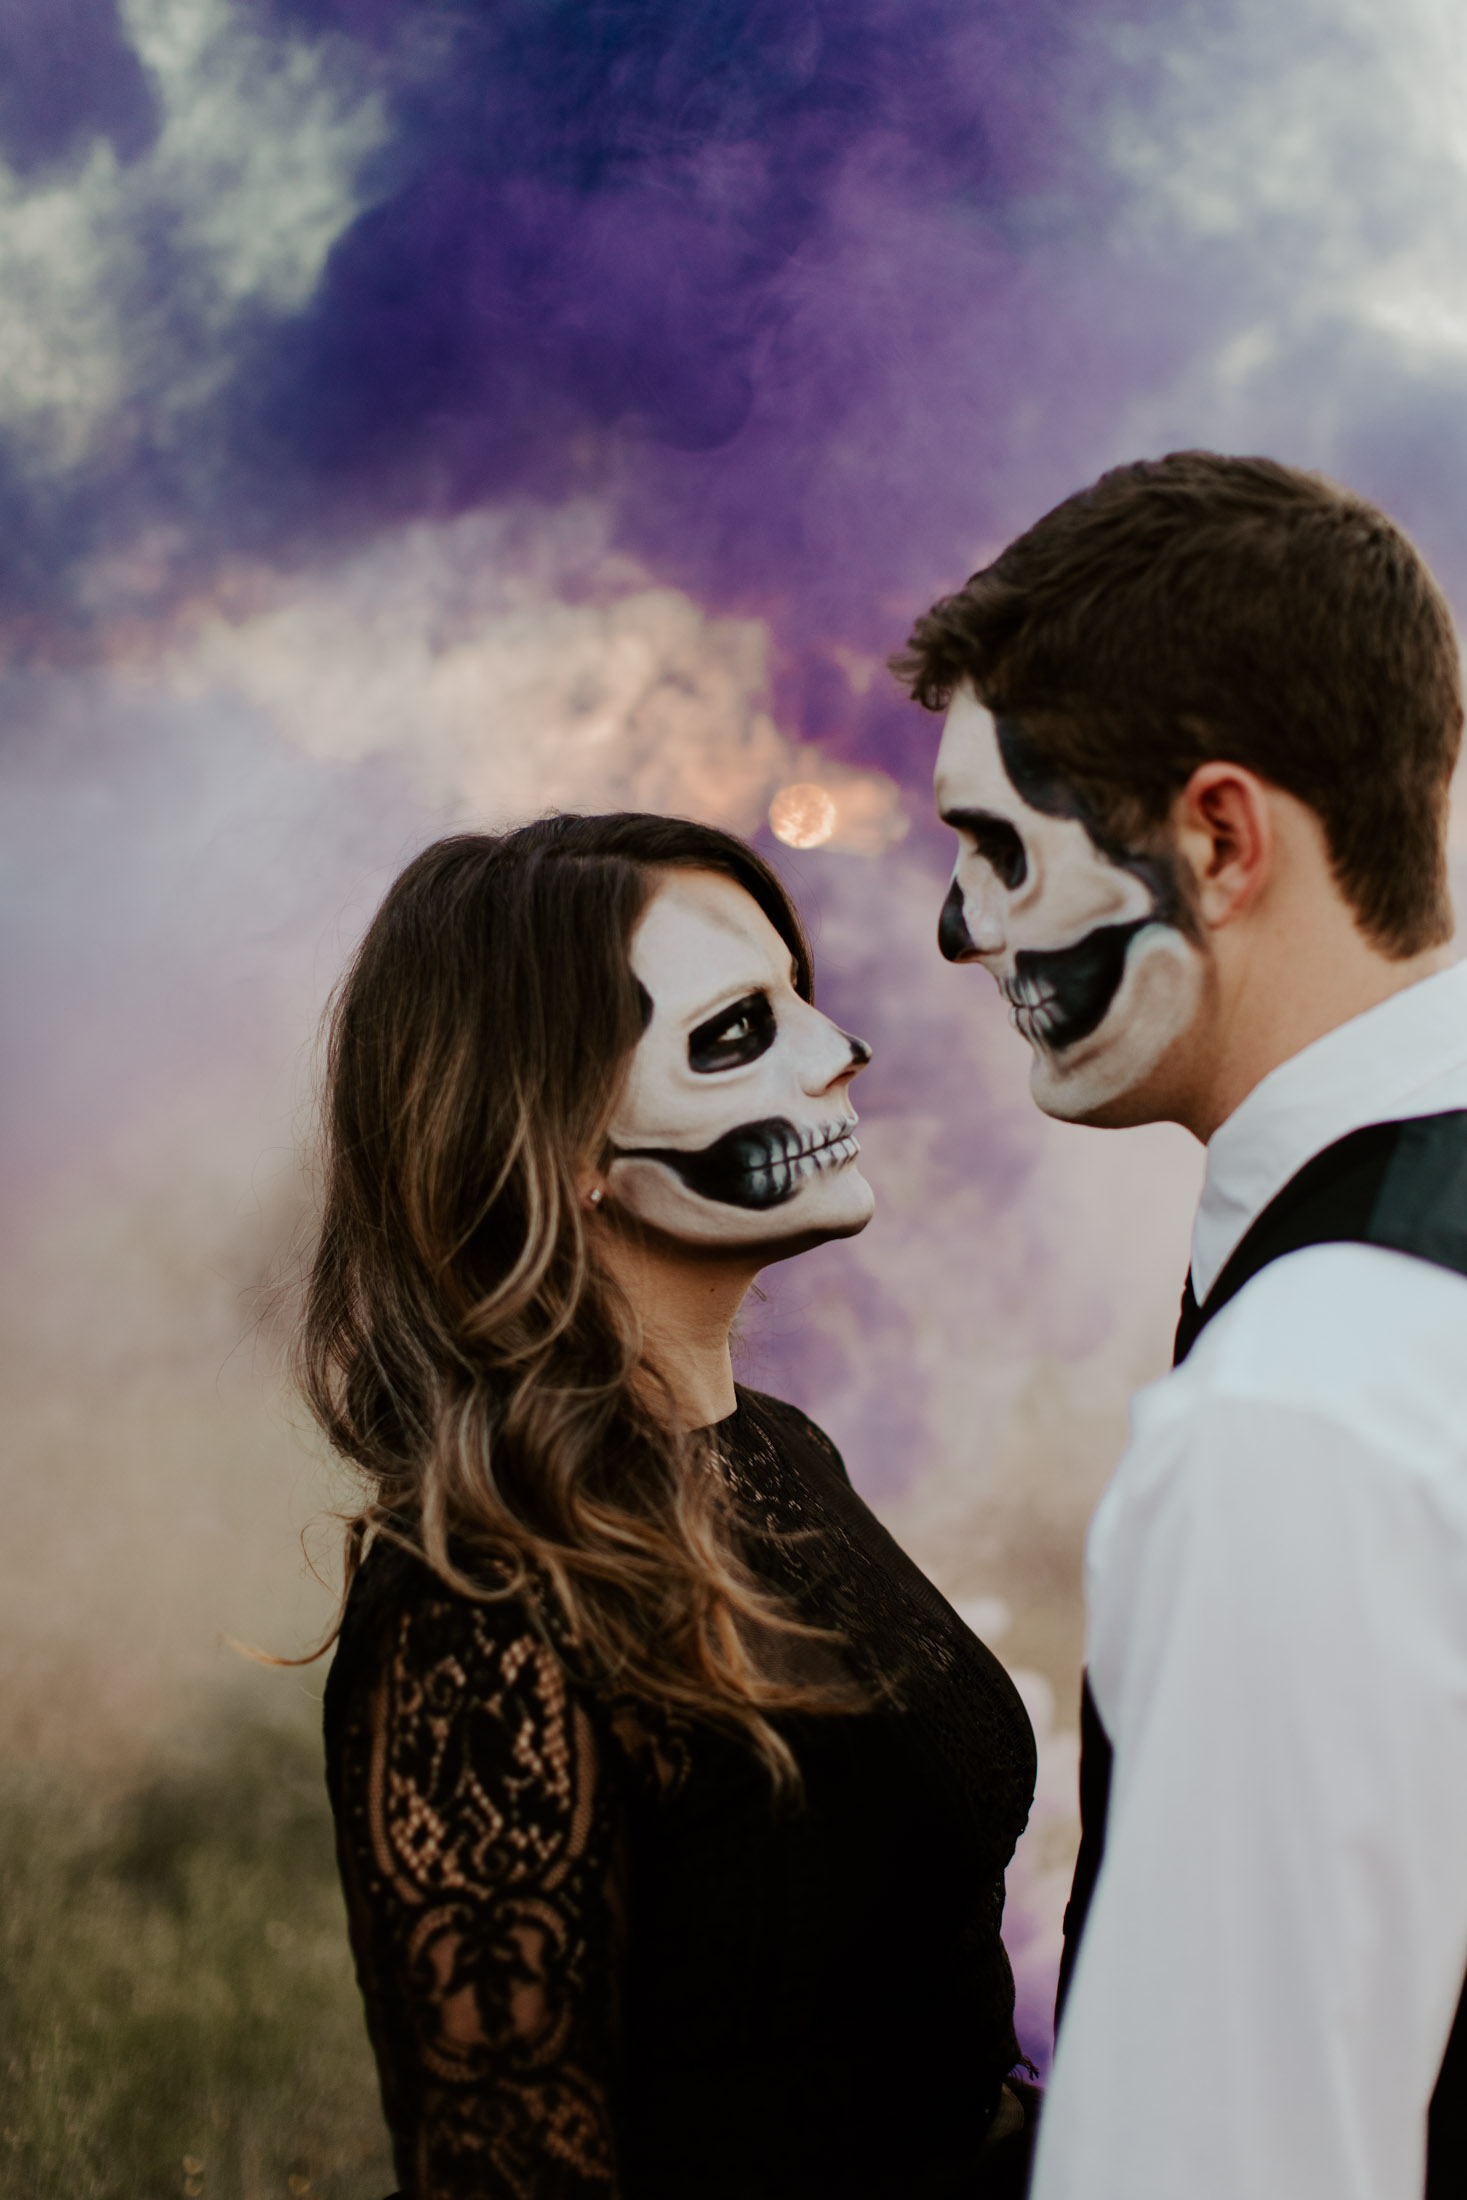 spooky photo of couple with purple smoke bomb in the background